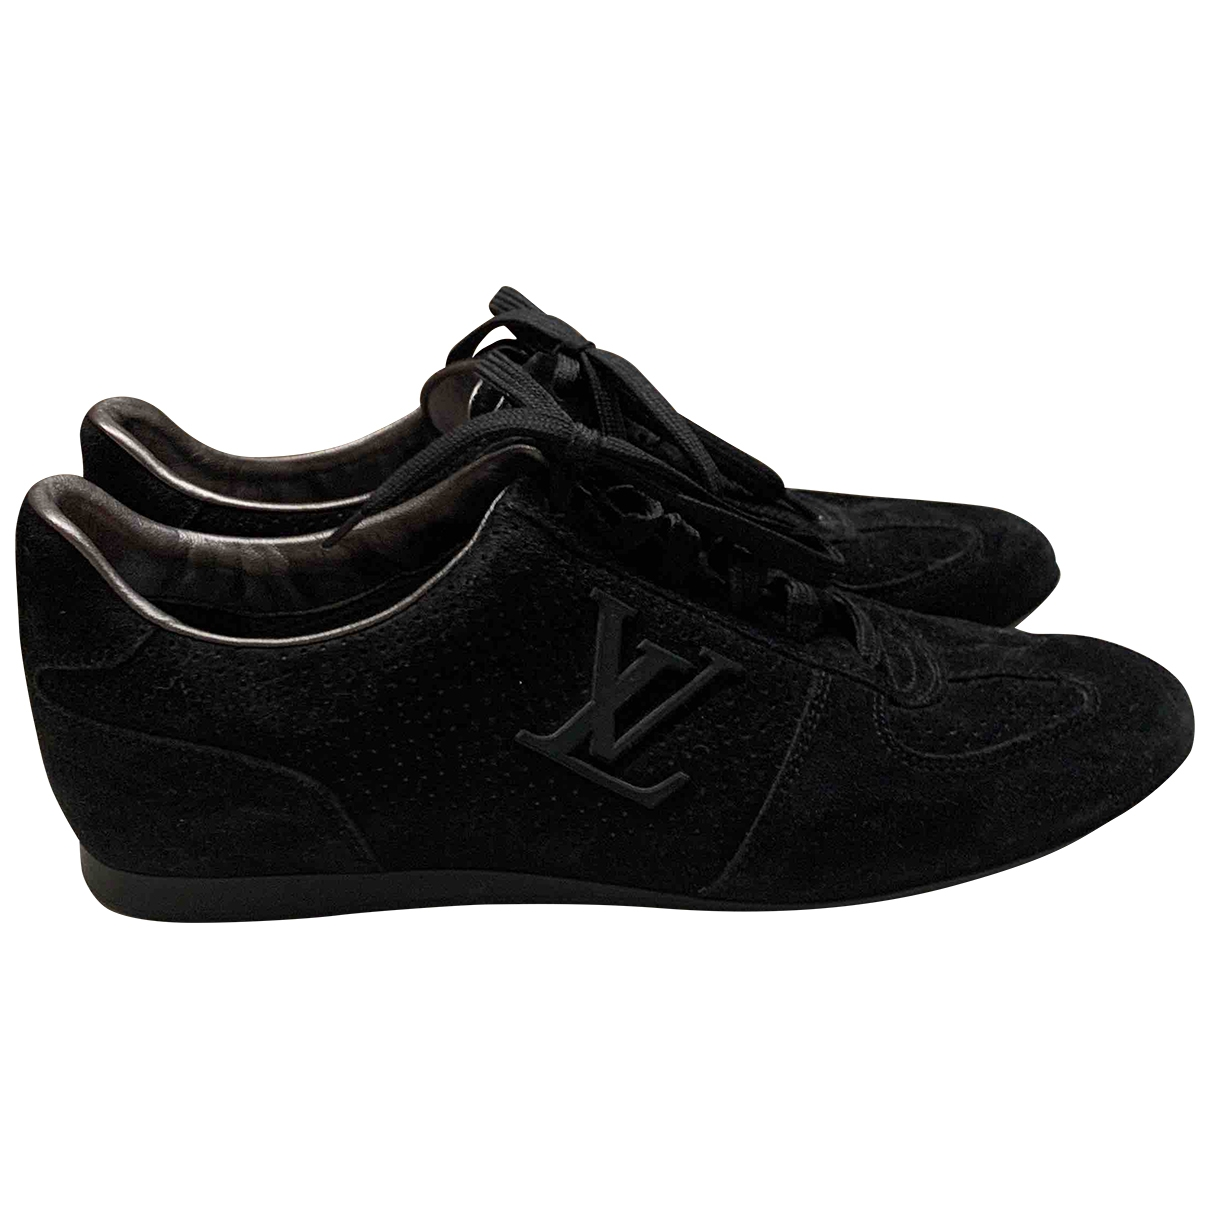 Louis Vuitton \N Black Suede Trainers for Women 37 EU